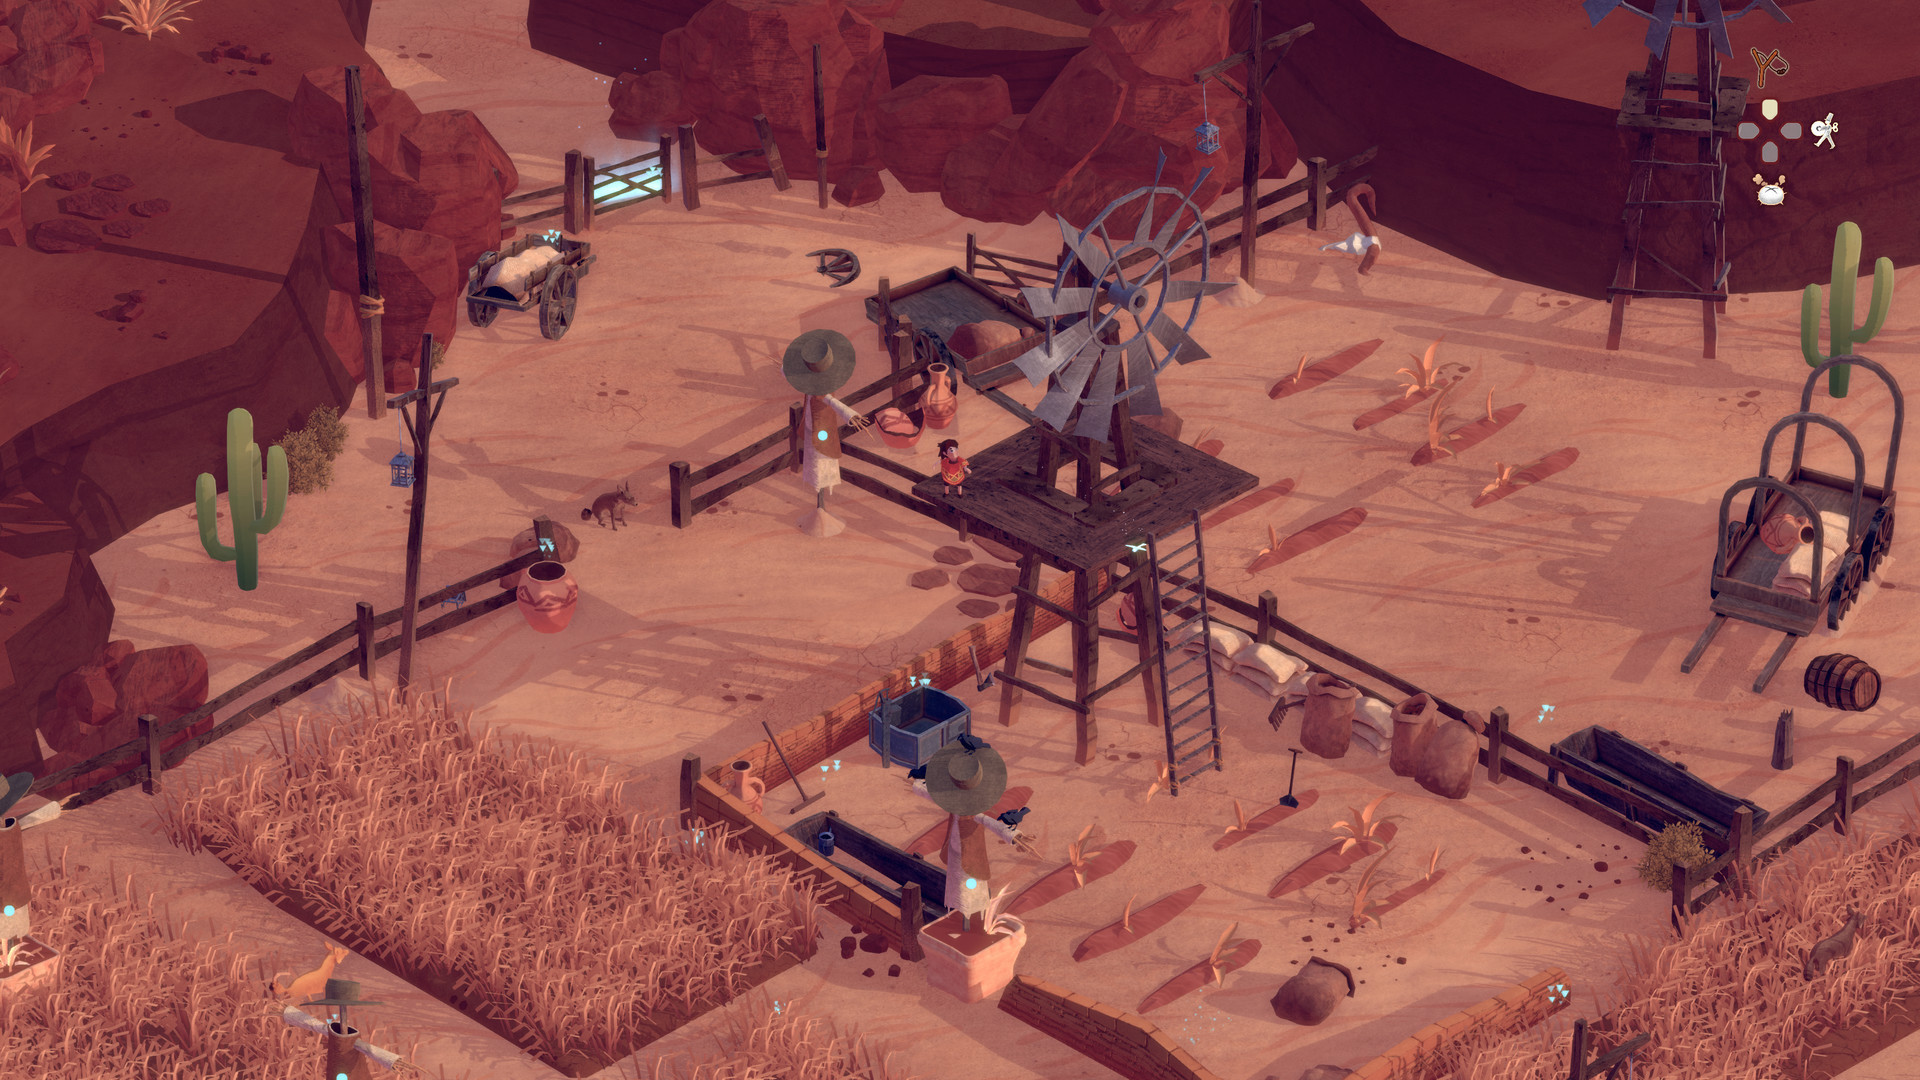 El Hijo - A Wild West Tale on Steam